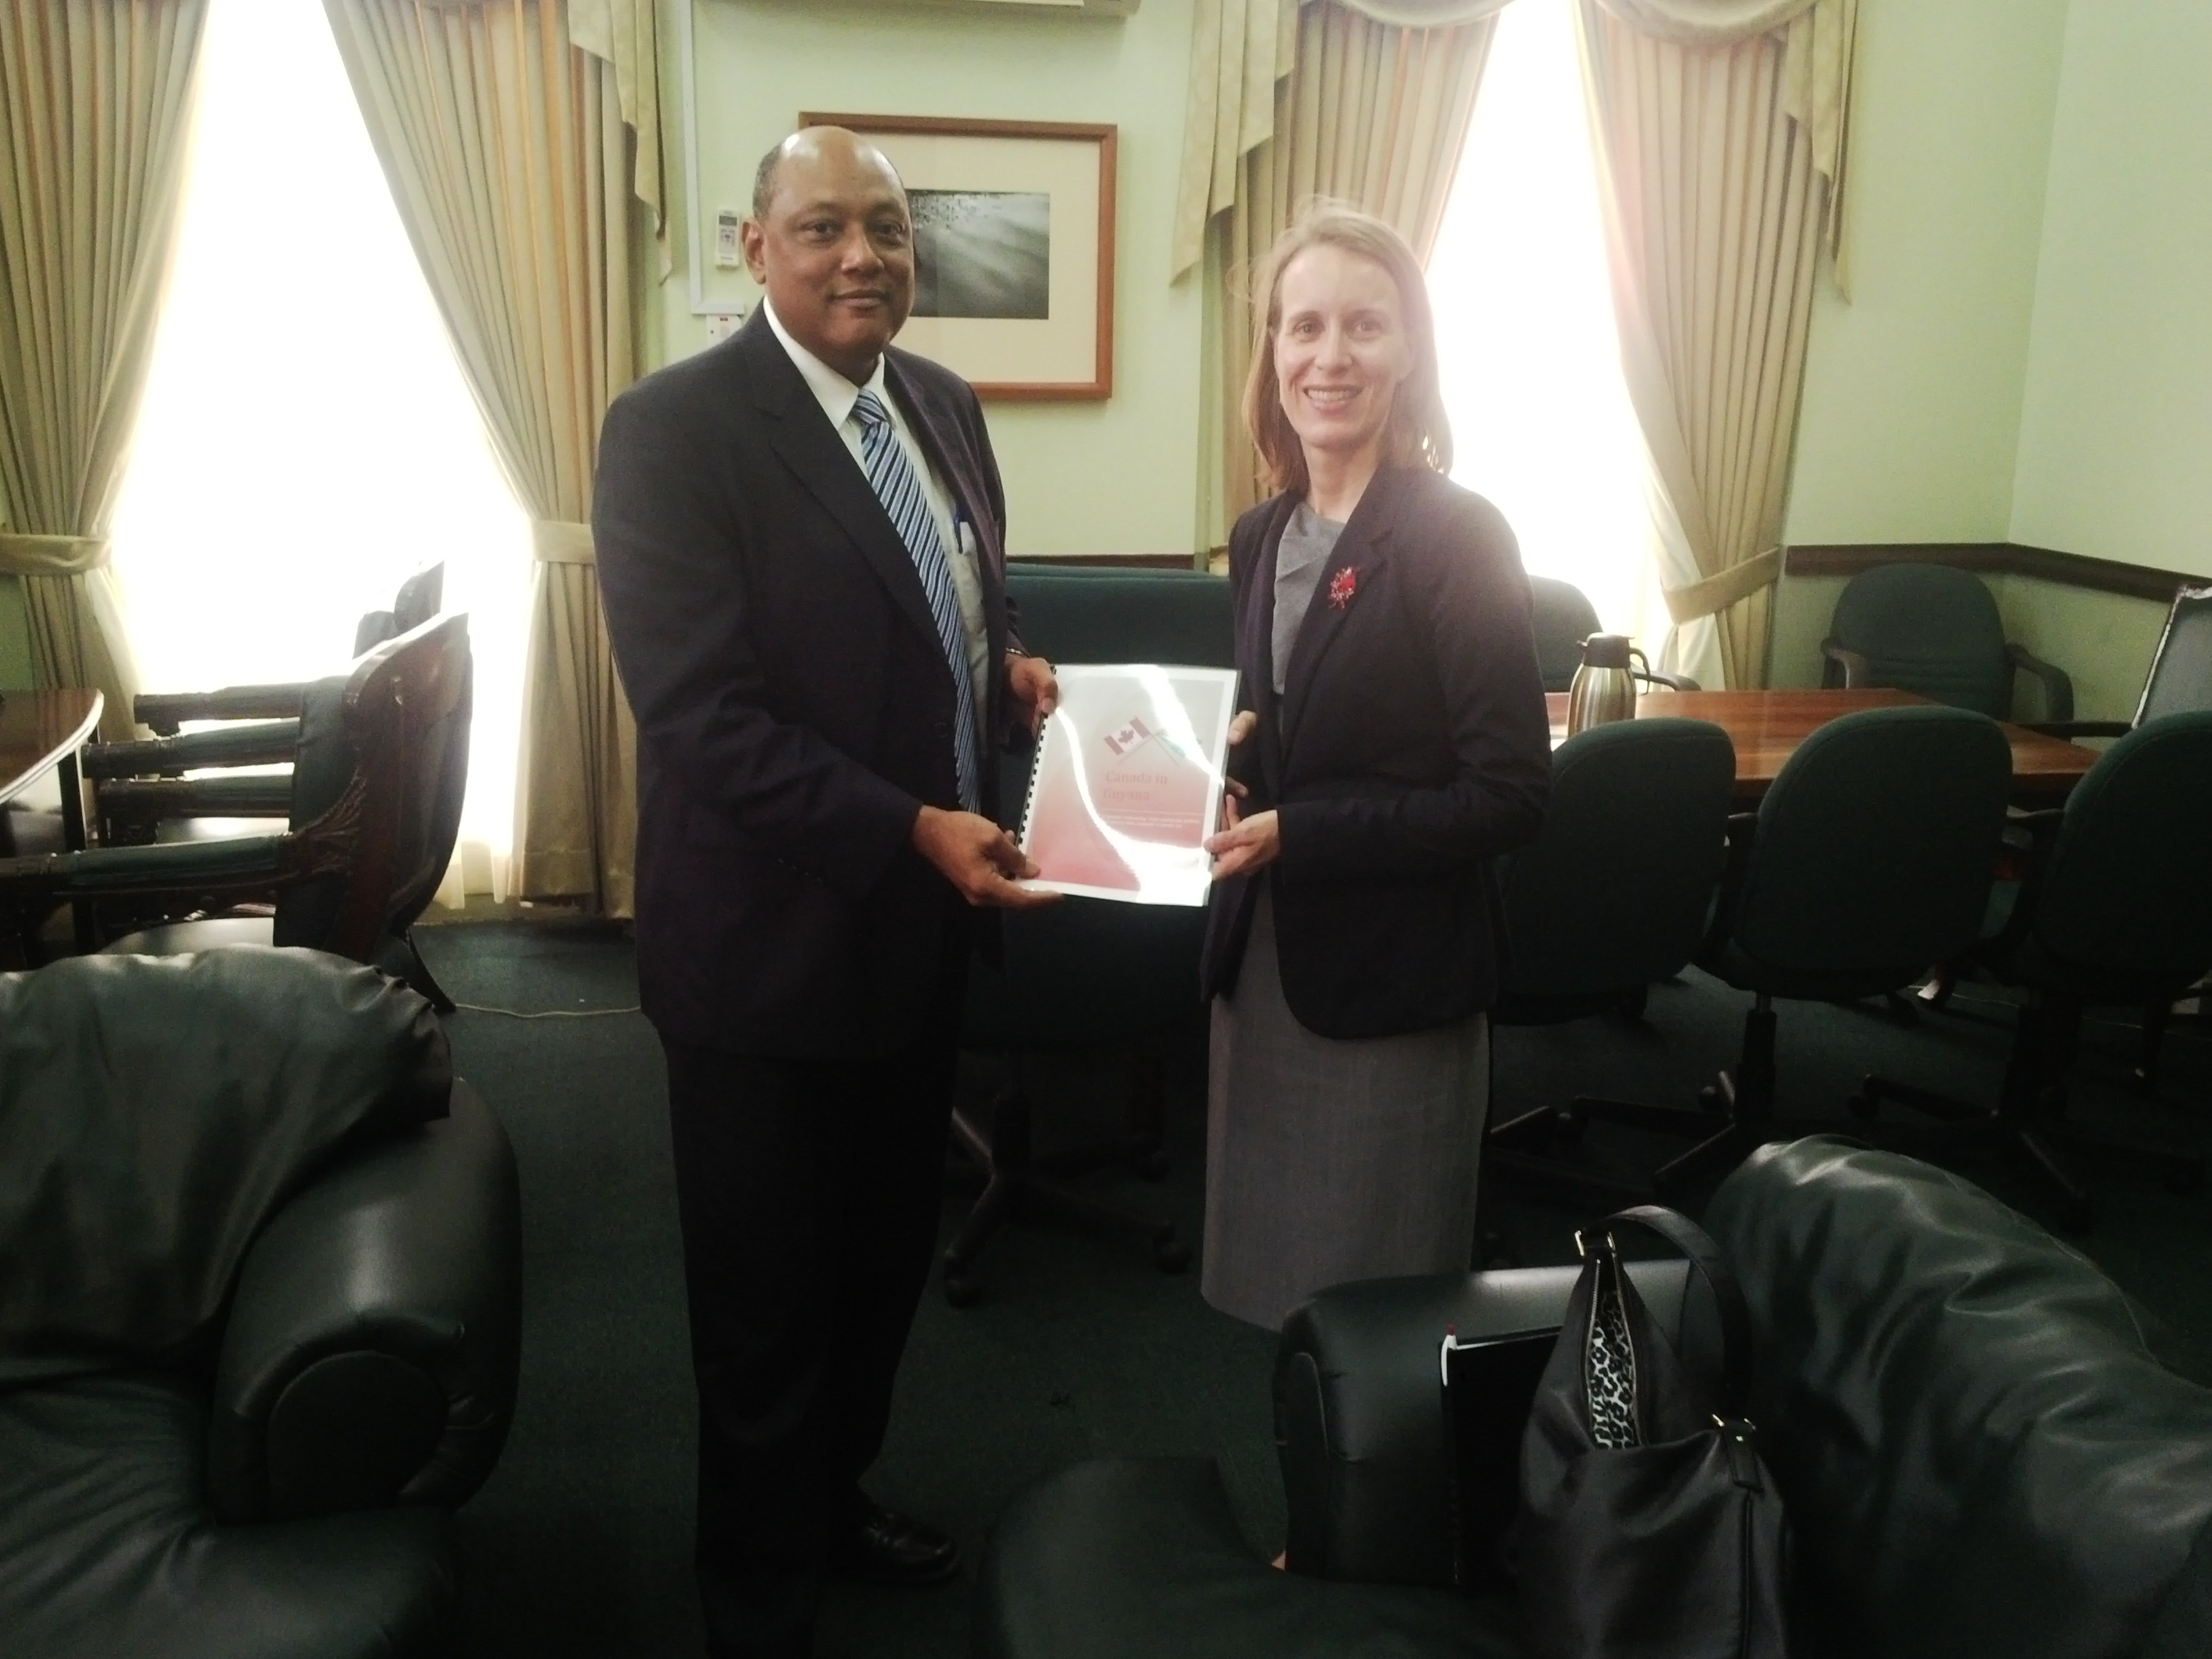 Speaker receives copy of a review of the partnership between Guyana and Canada